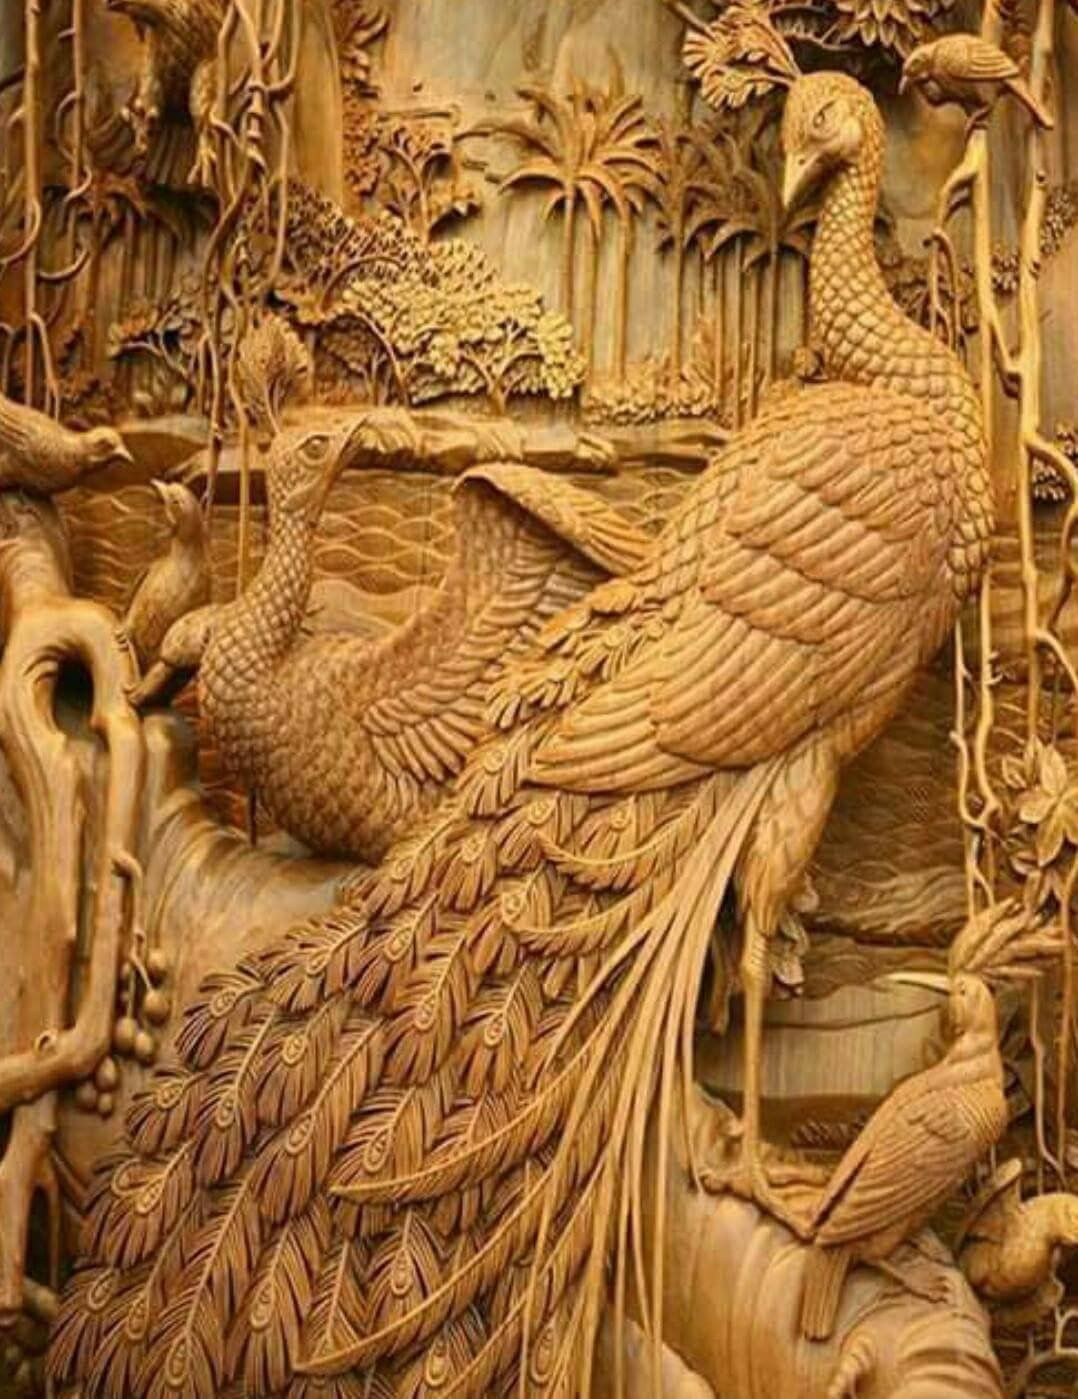 Pin by quixotes world on ak: proud as peacocks wood carving art